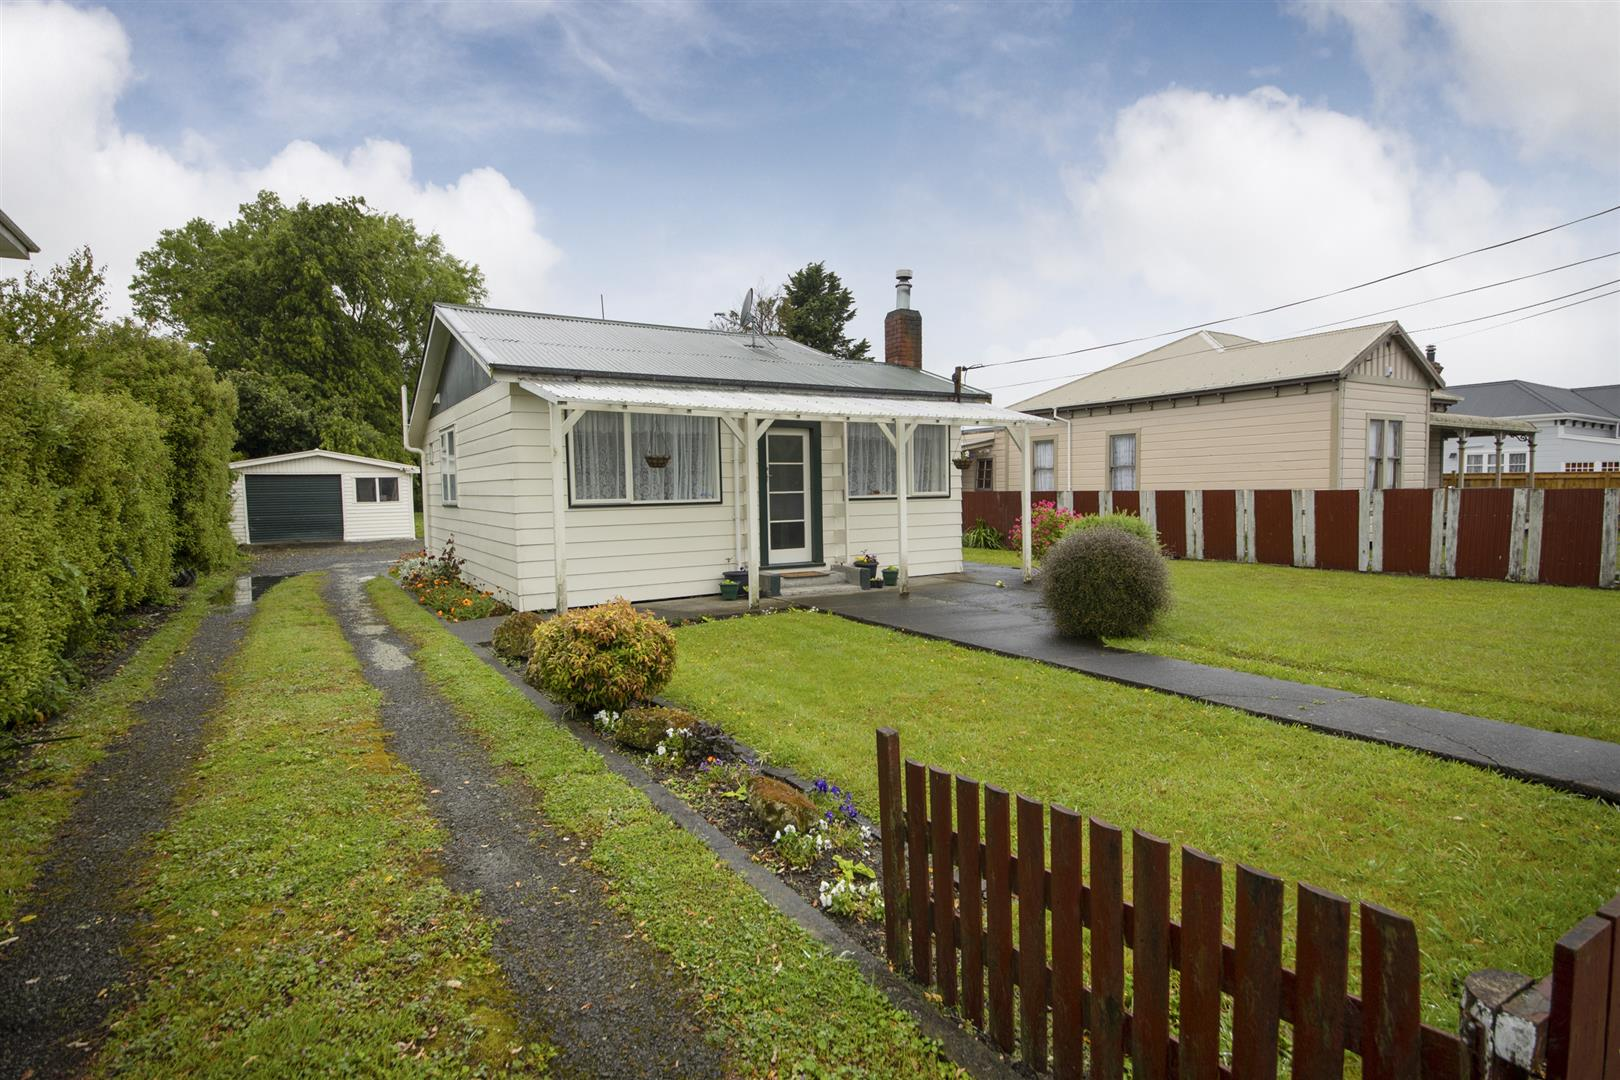 CUTE HOME - APPROX. 911 M2 SECTION